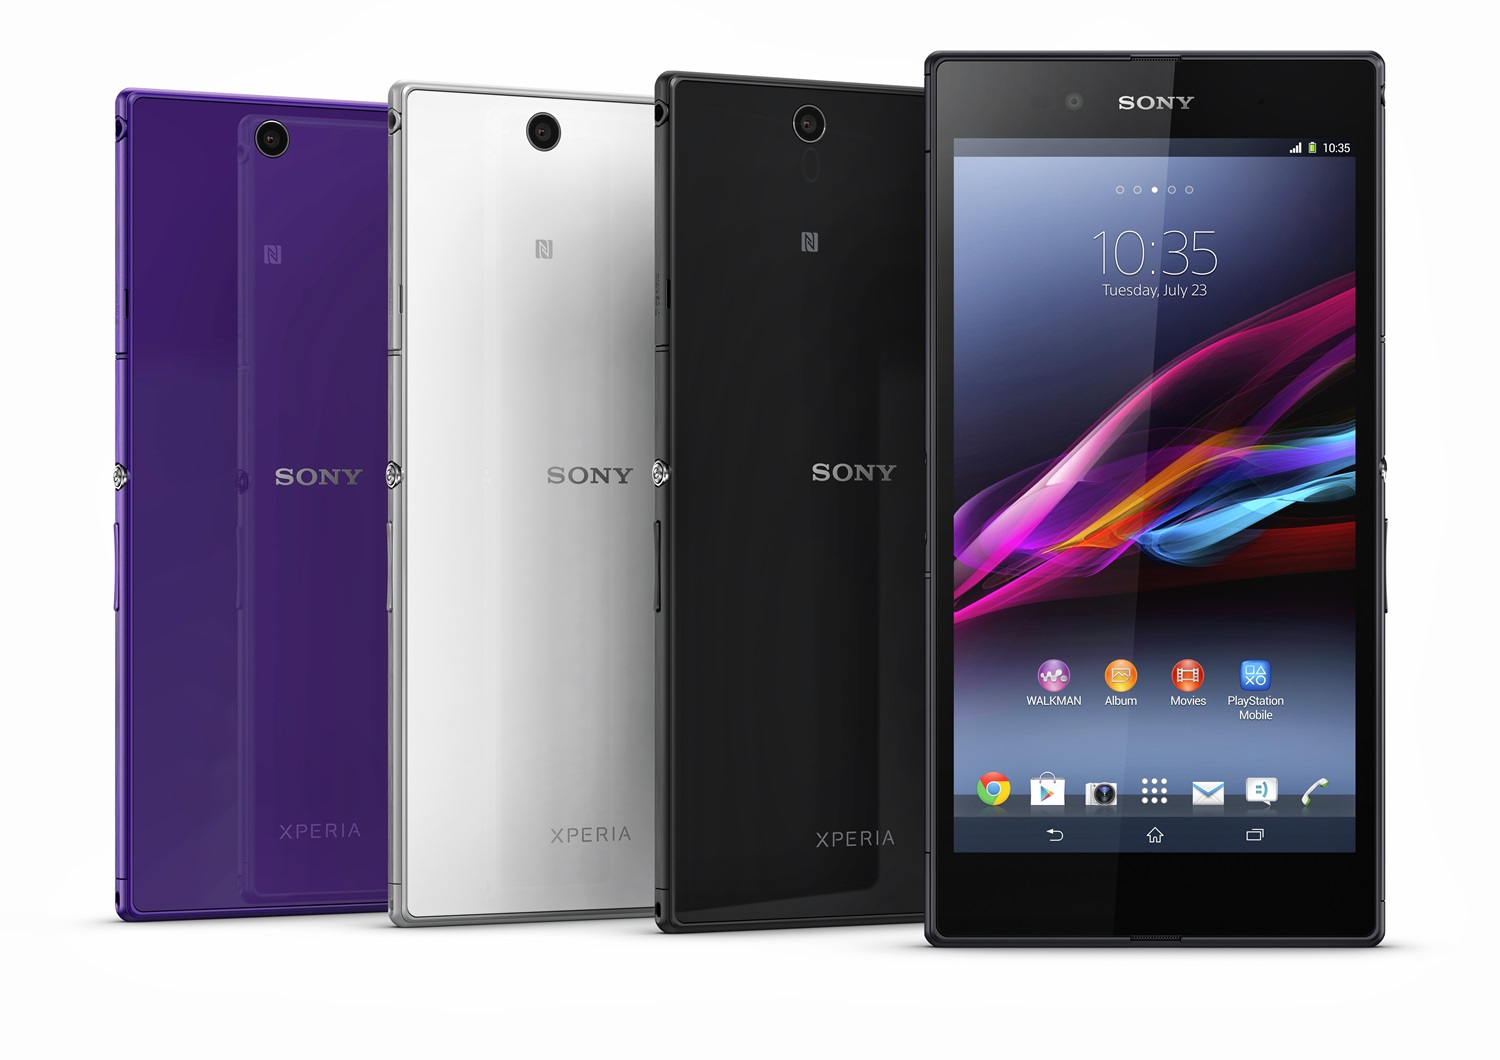 Only in Japan: Sony transforms its Xperia Z Ultra smartphone into a WiFi-only tablet